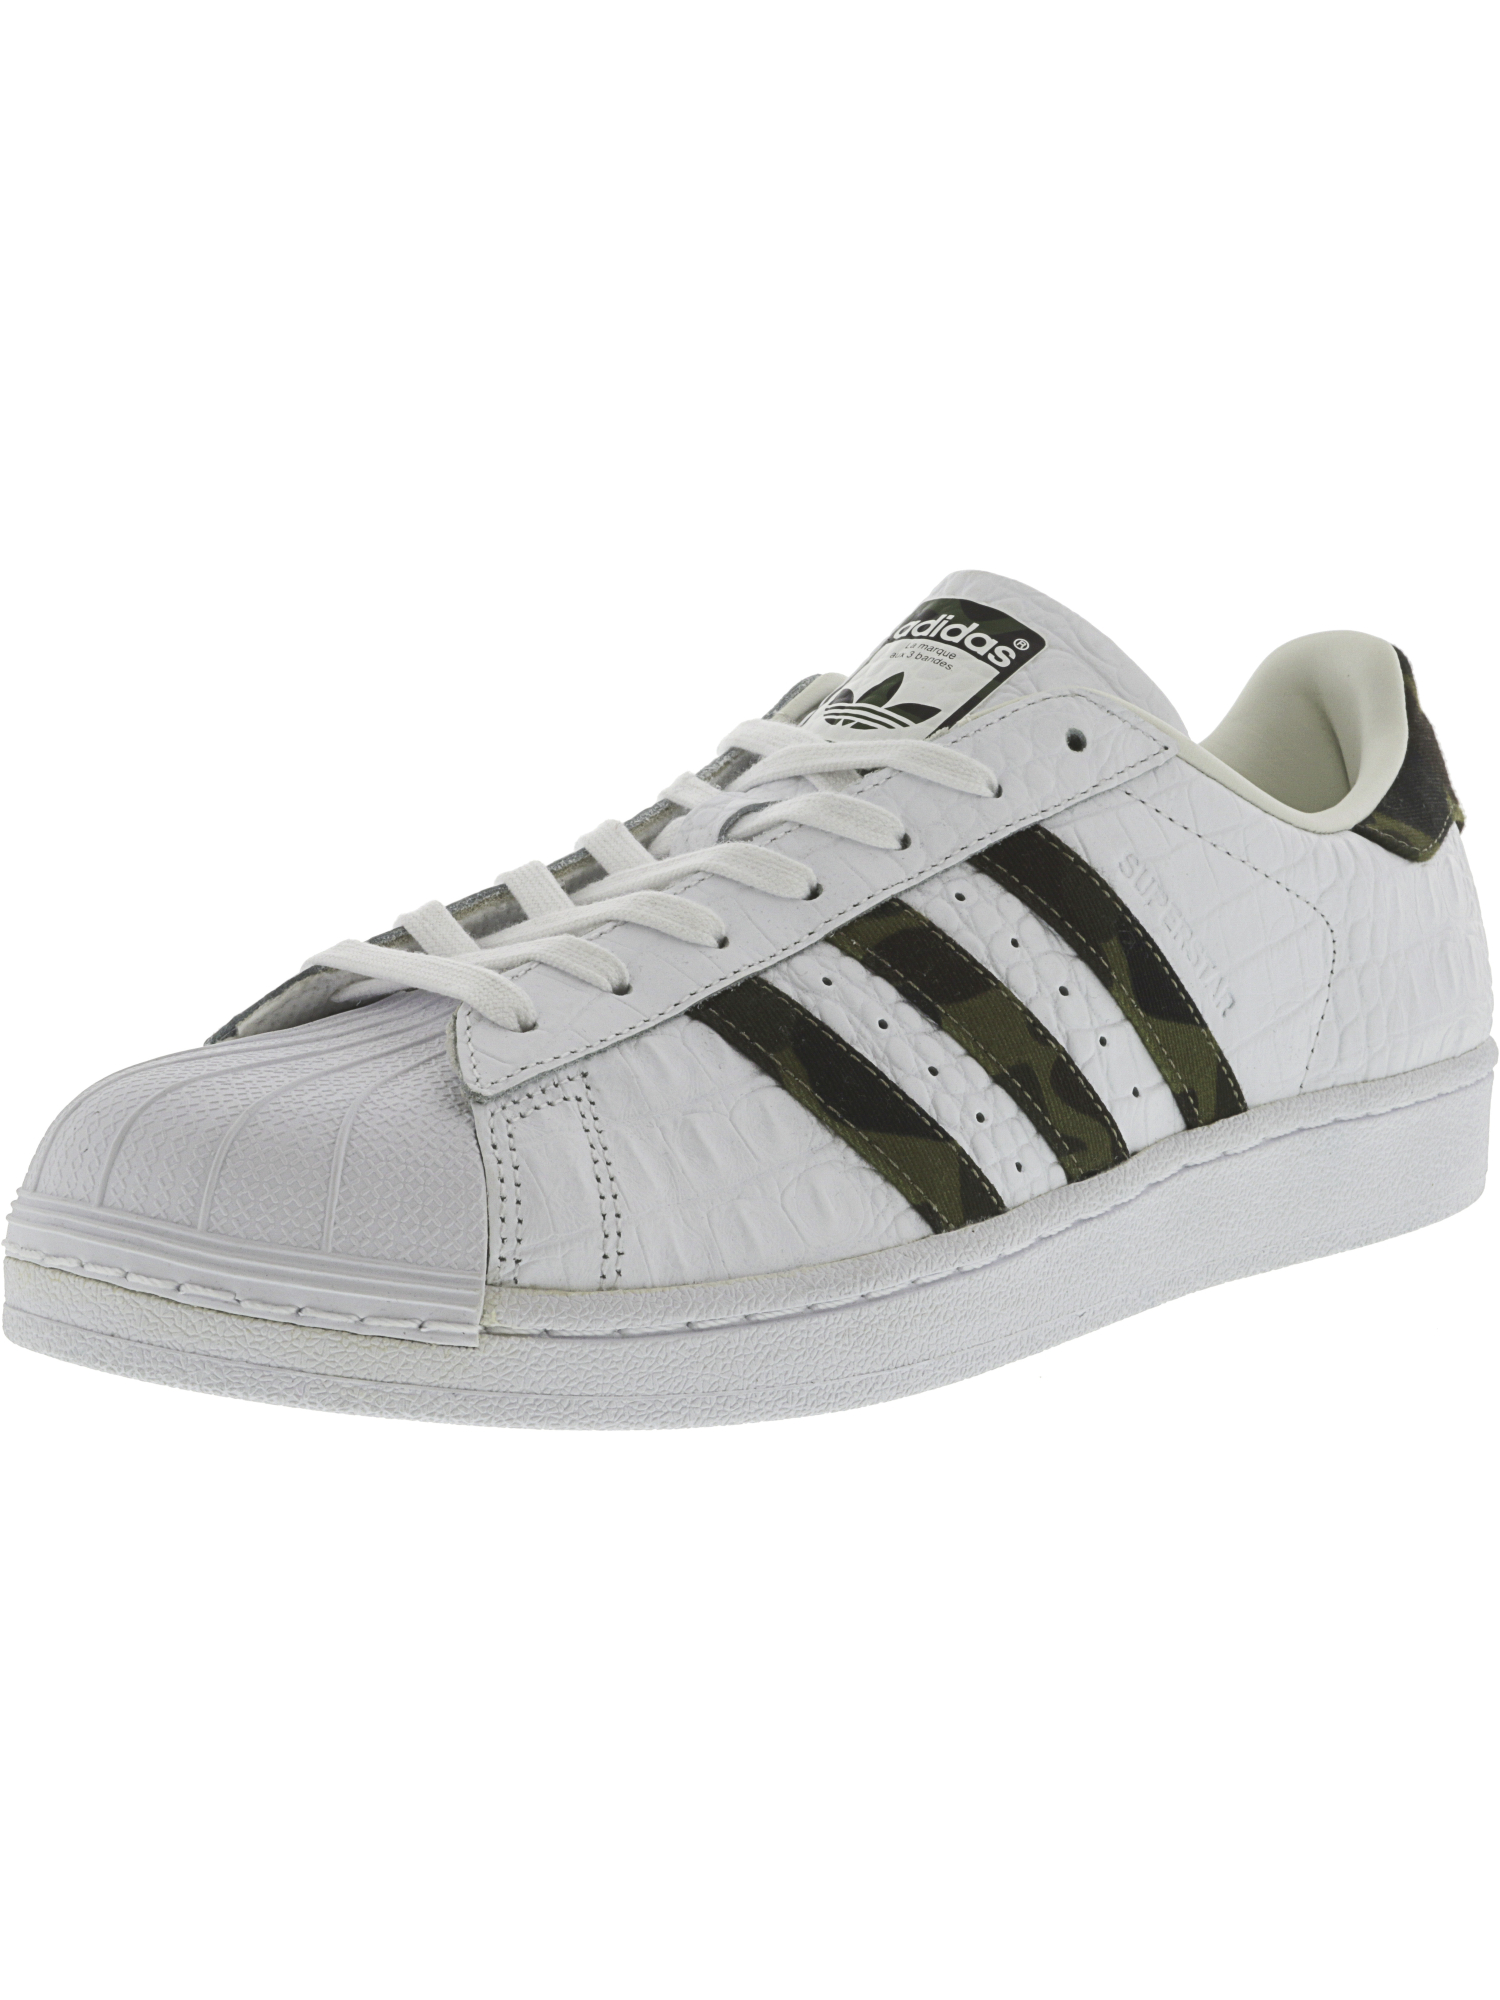 NIB Men's Adidas NEO Baseline Leather Sneakers Shoes Choose